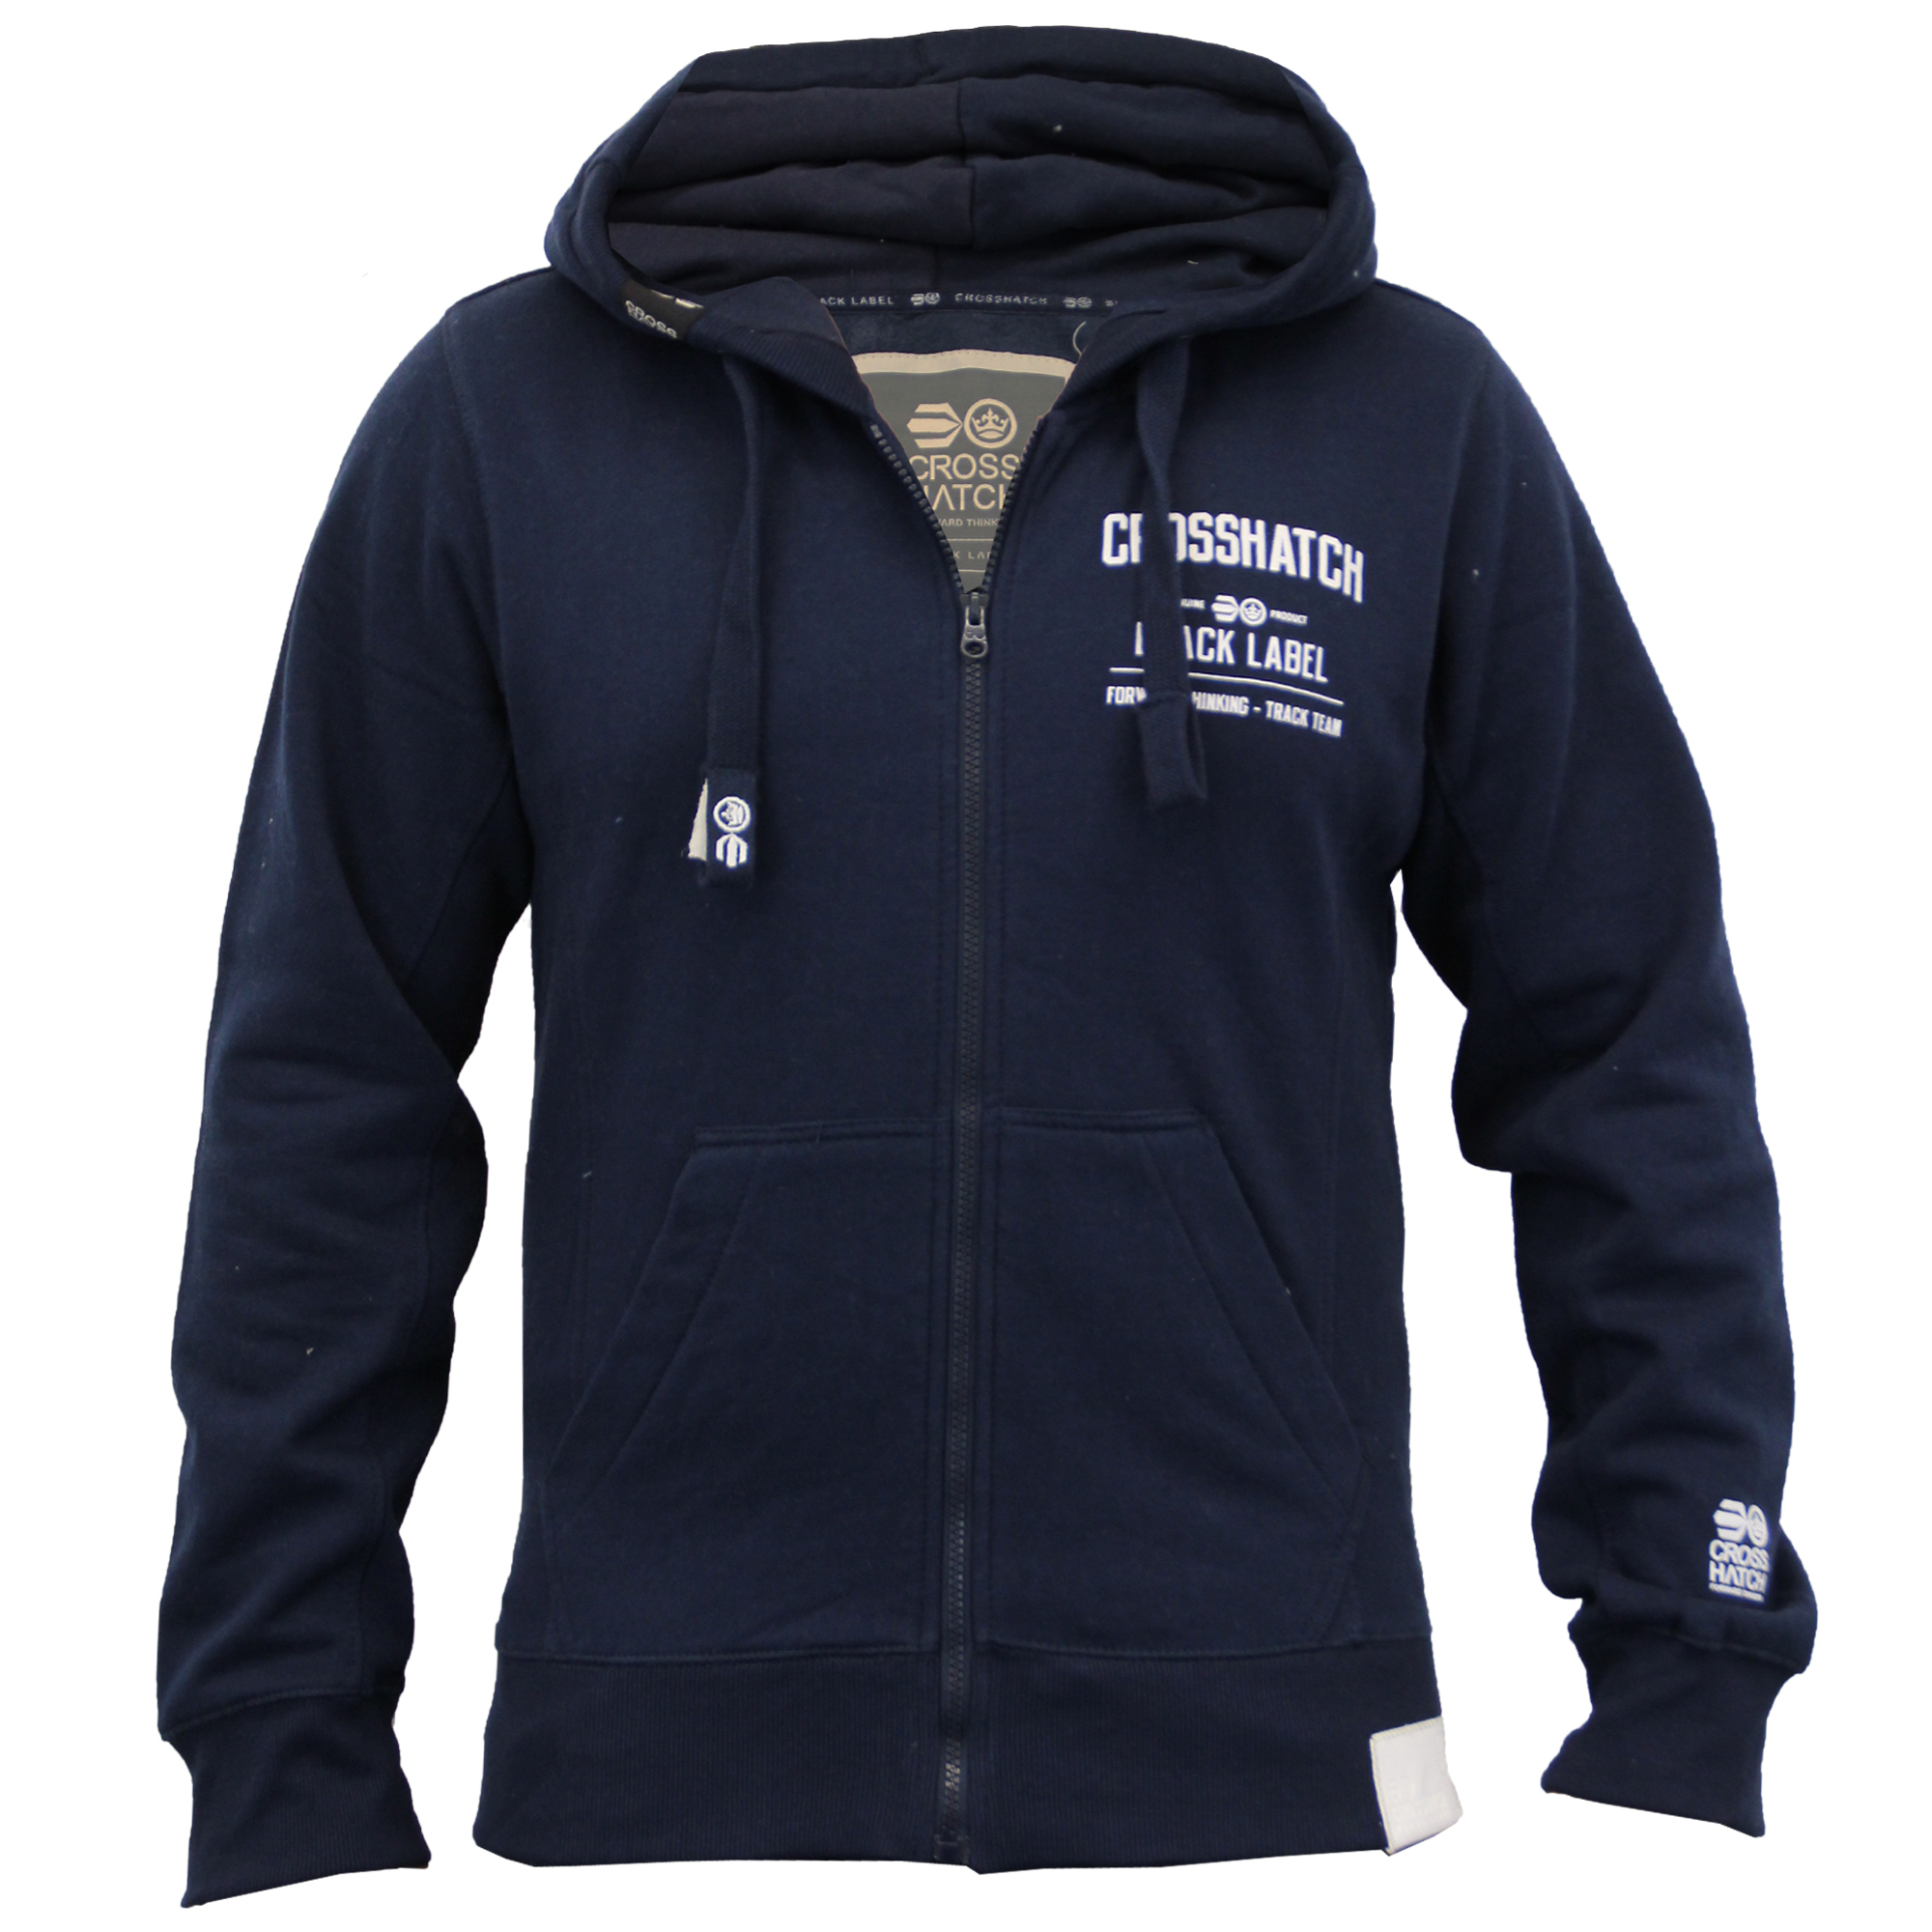 Mens-Hooded-Fleece-Lined-Top-Sweatshirt-By-Crosshatch thumbnail 5